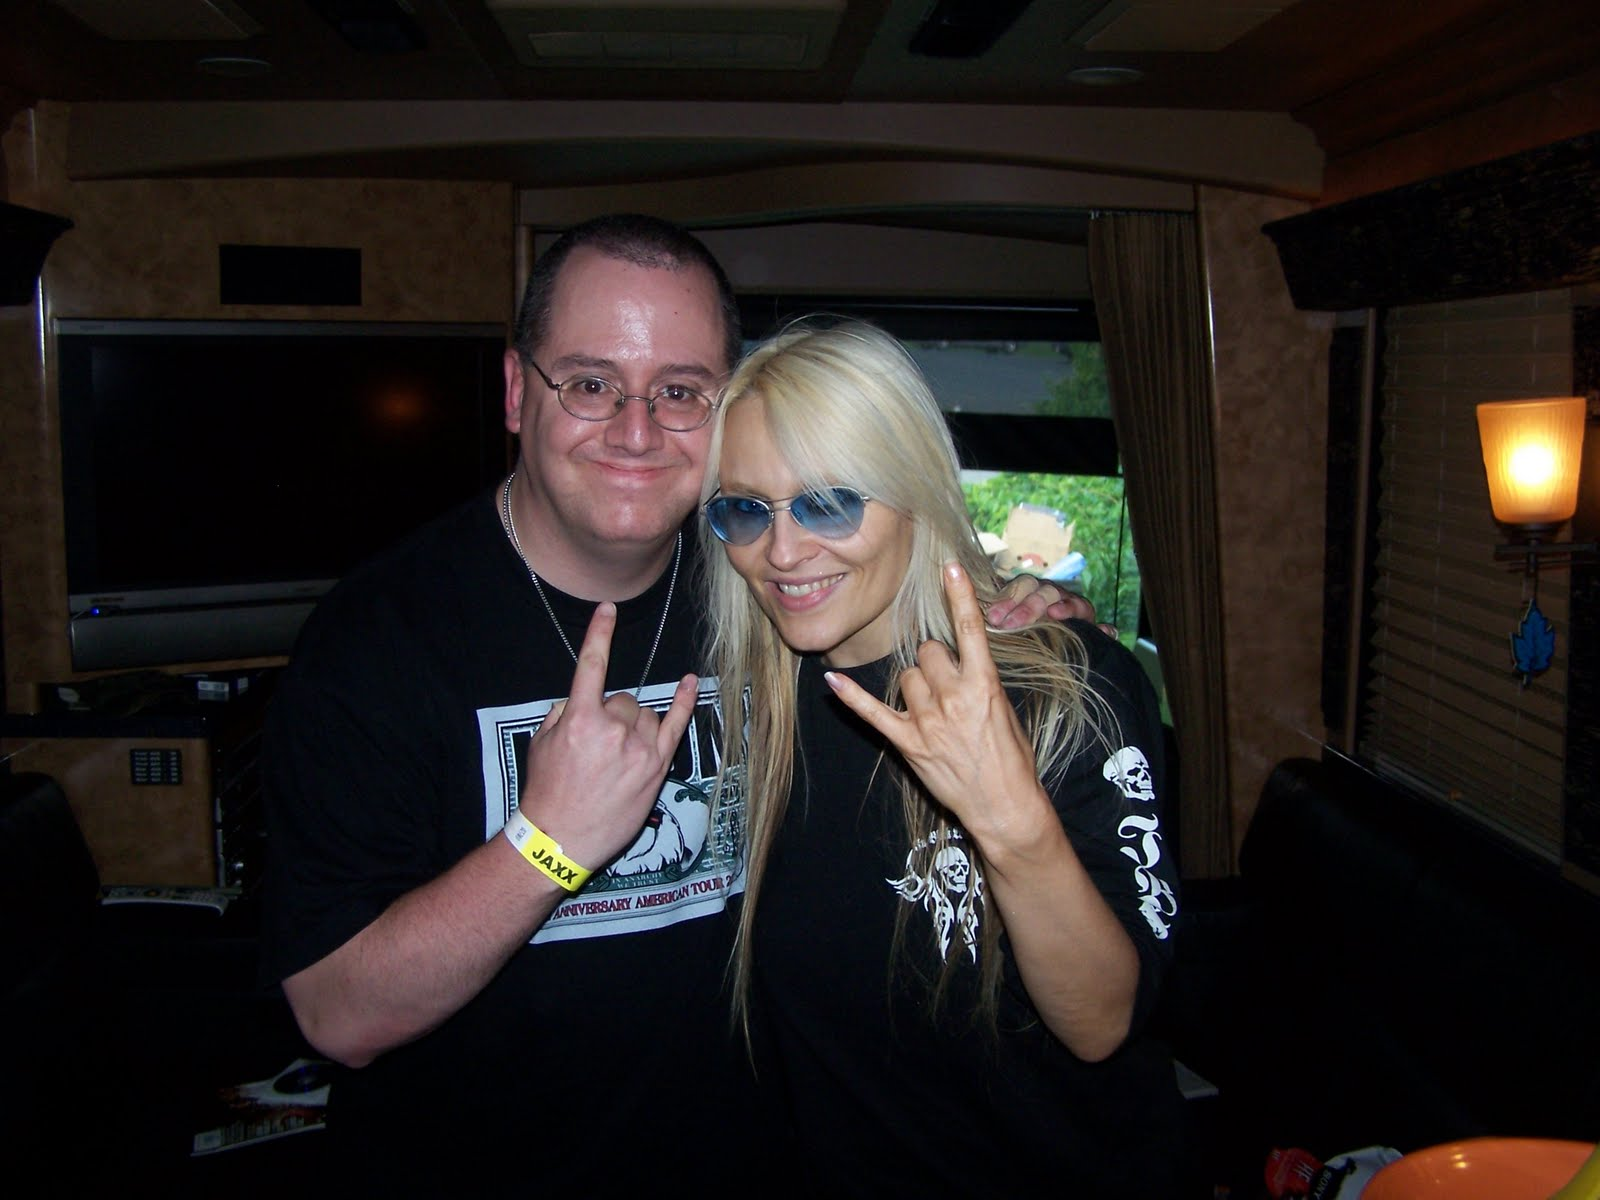 because it's doro | ray van horn, jr. dot com